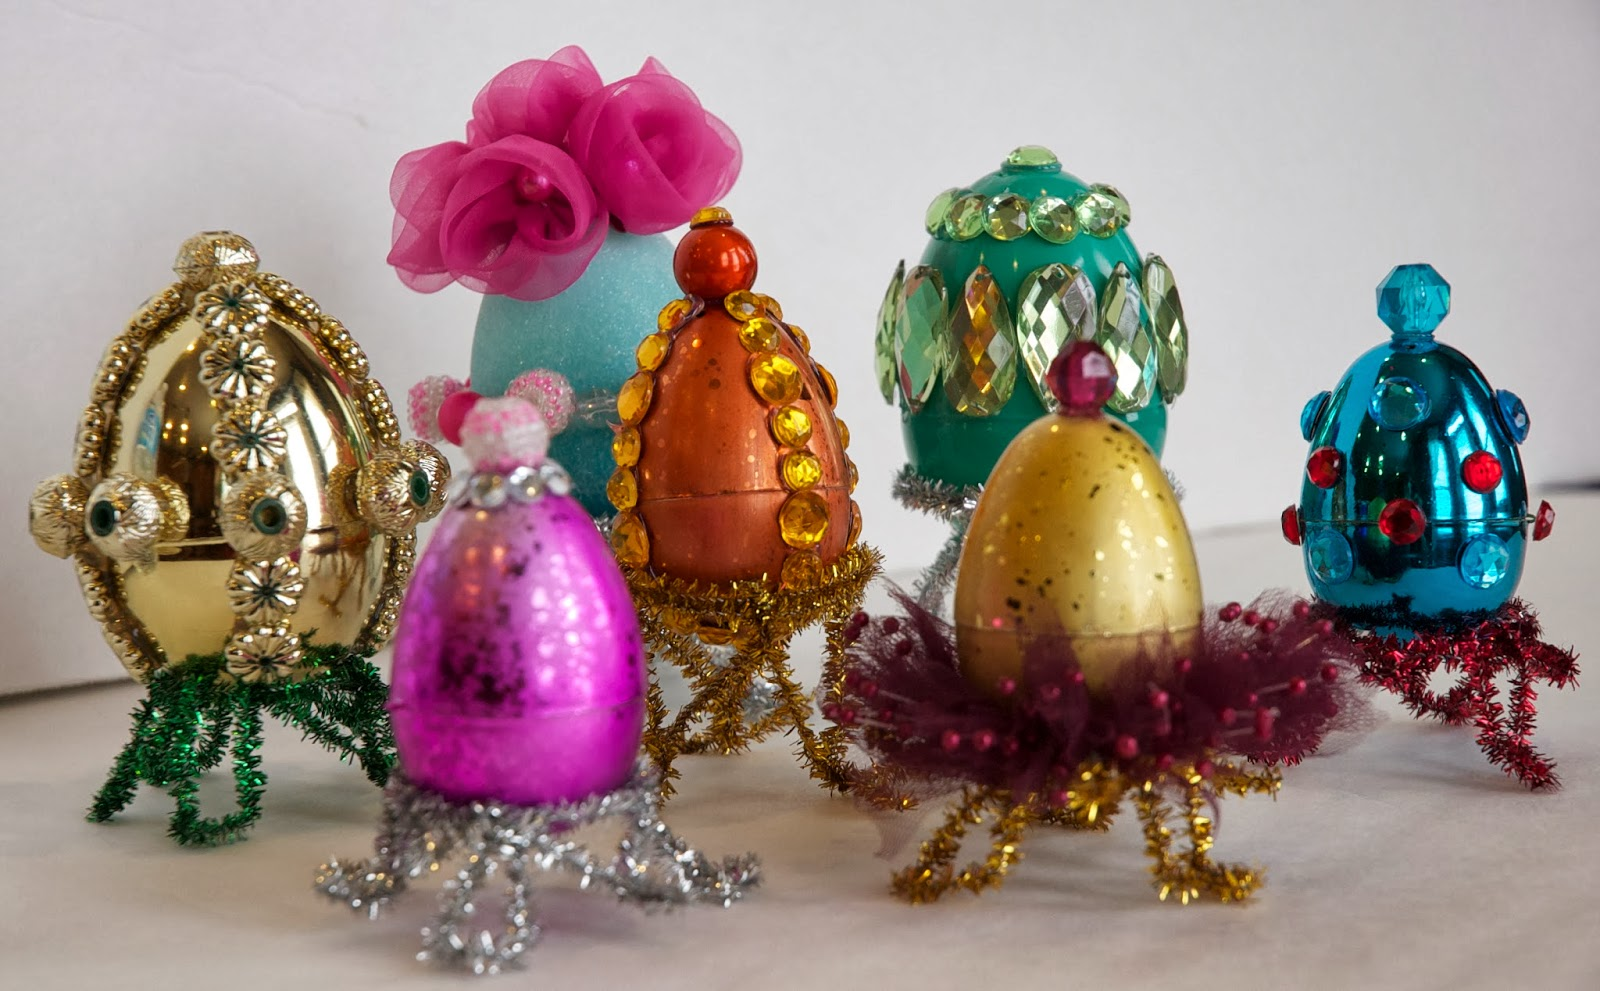 Faberge Egg Craft Project